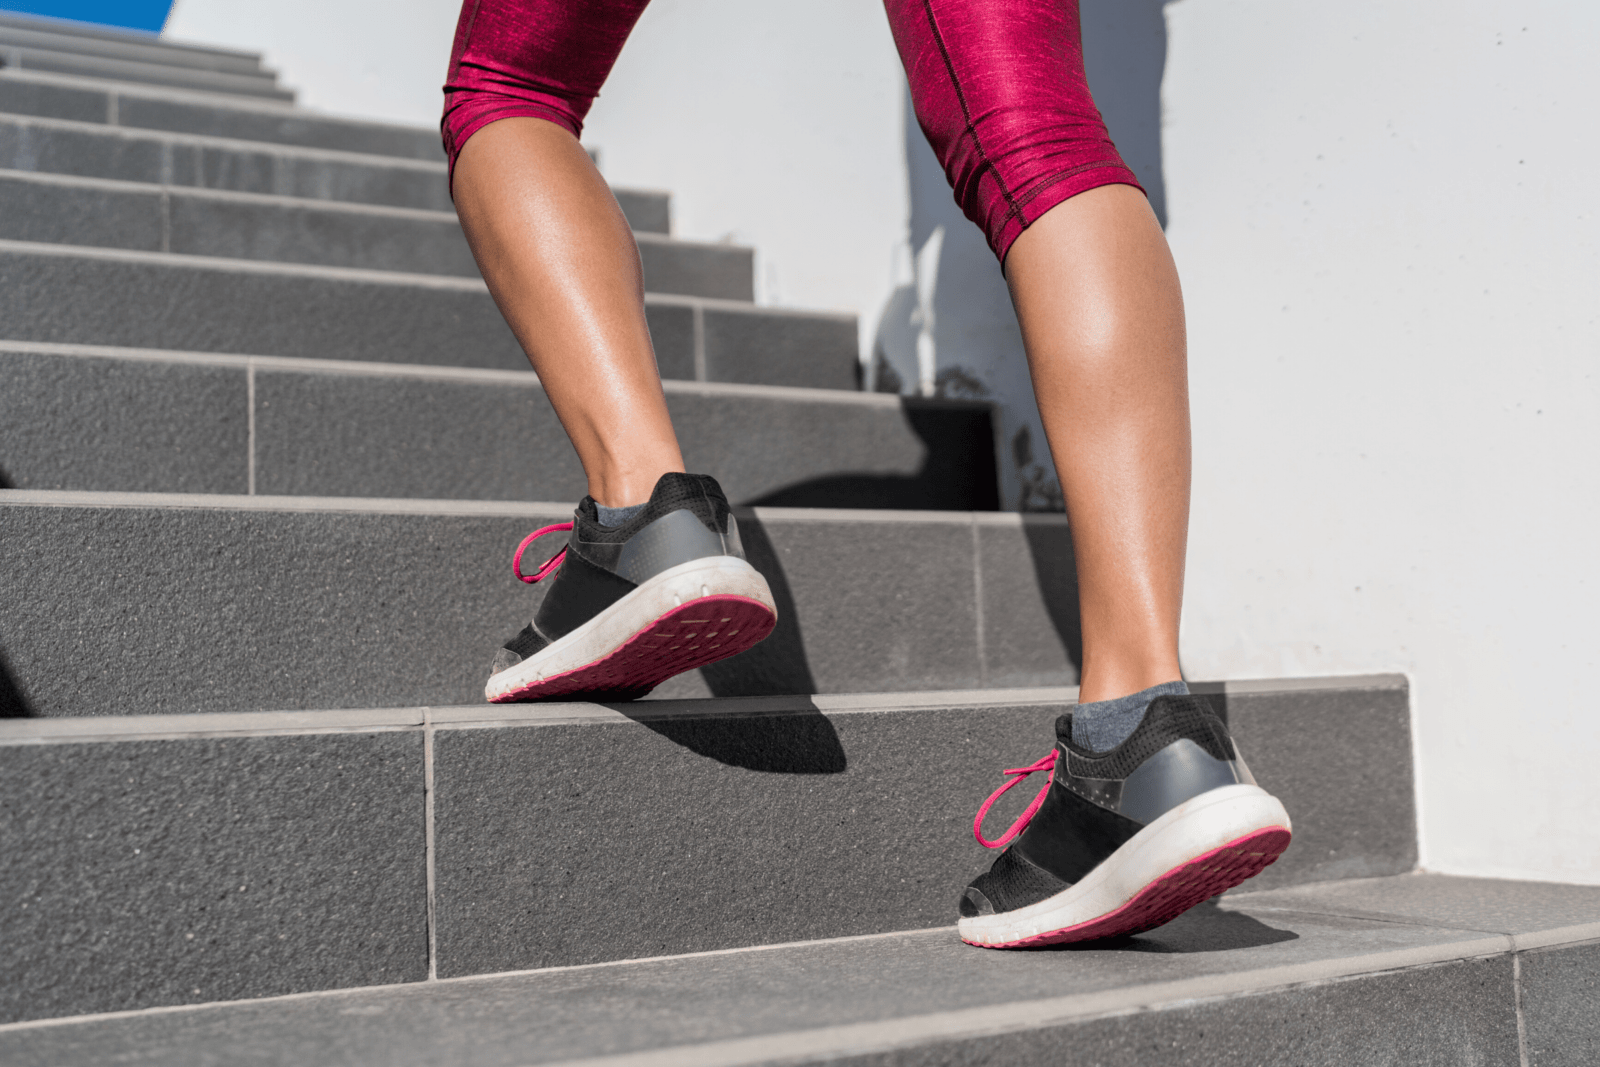 Reach Your Goals With High-Intensity Interval Training (HIIT)